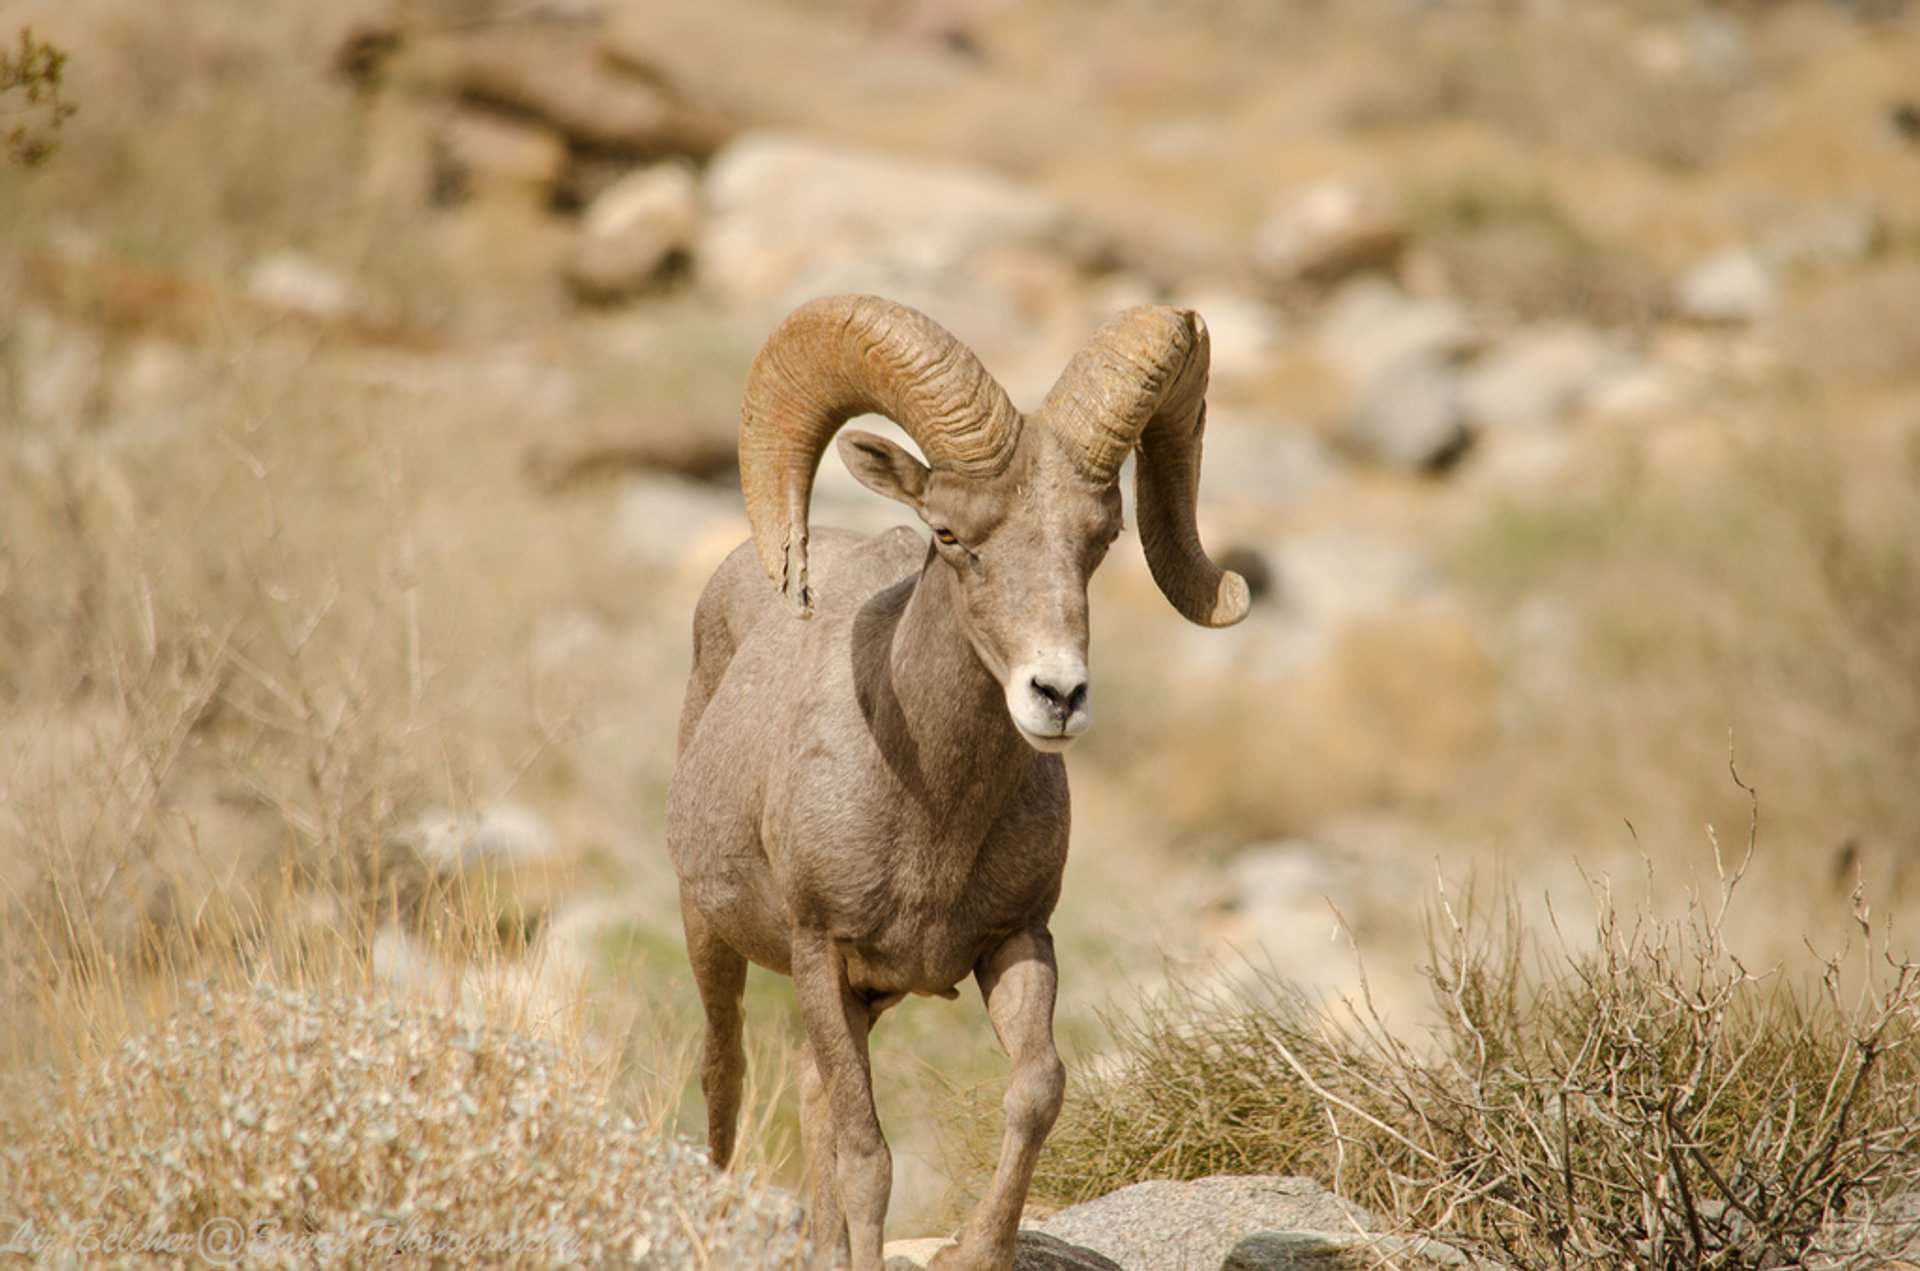 Big Horn Sheep in Los Angeles 2019 - Best Time